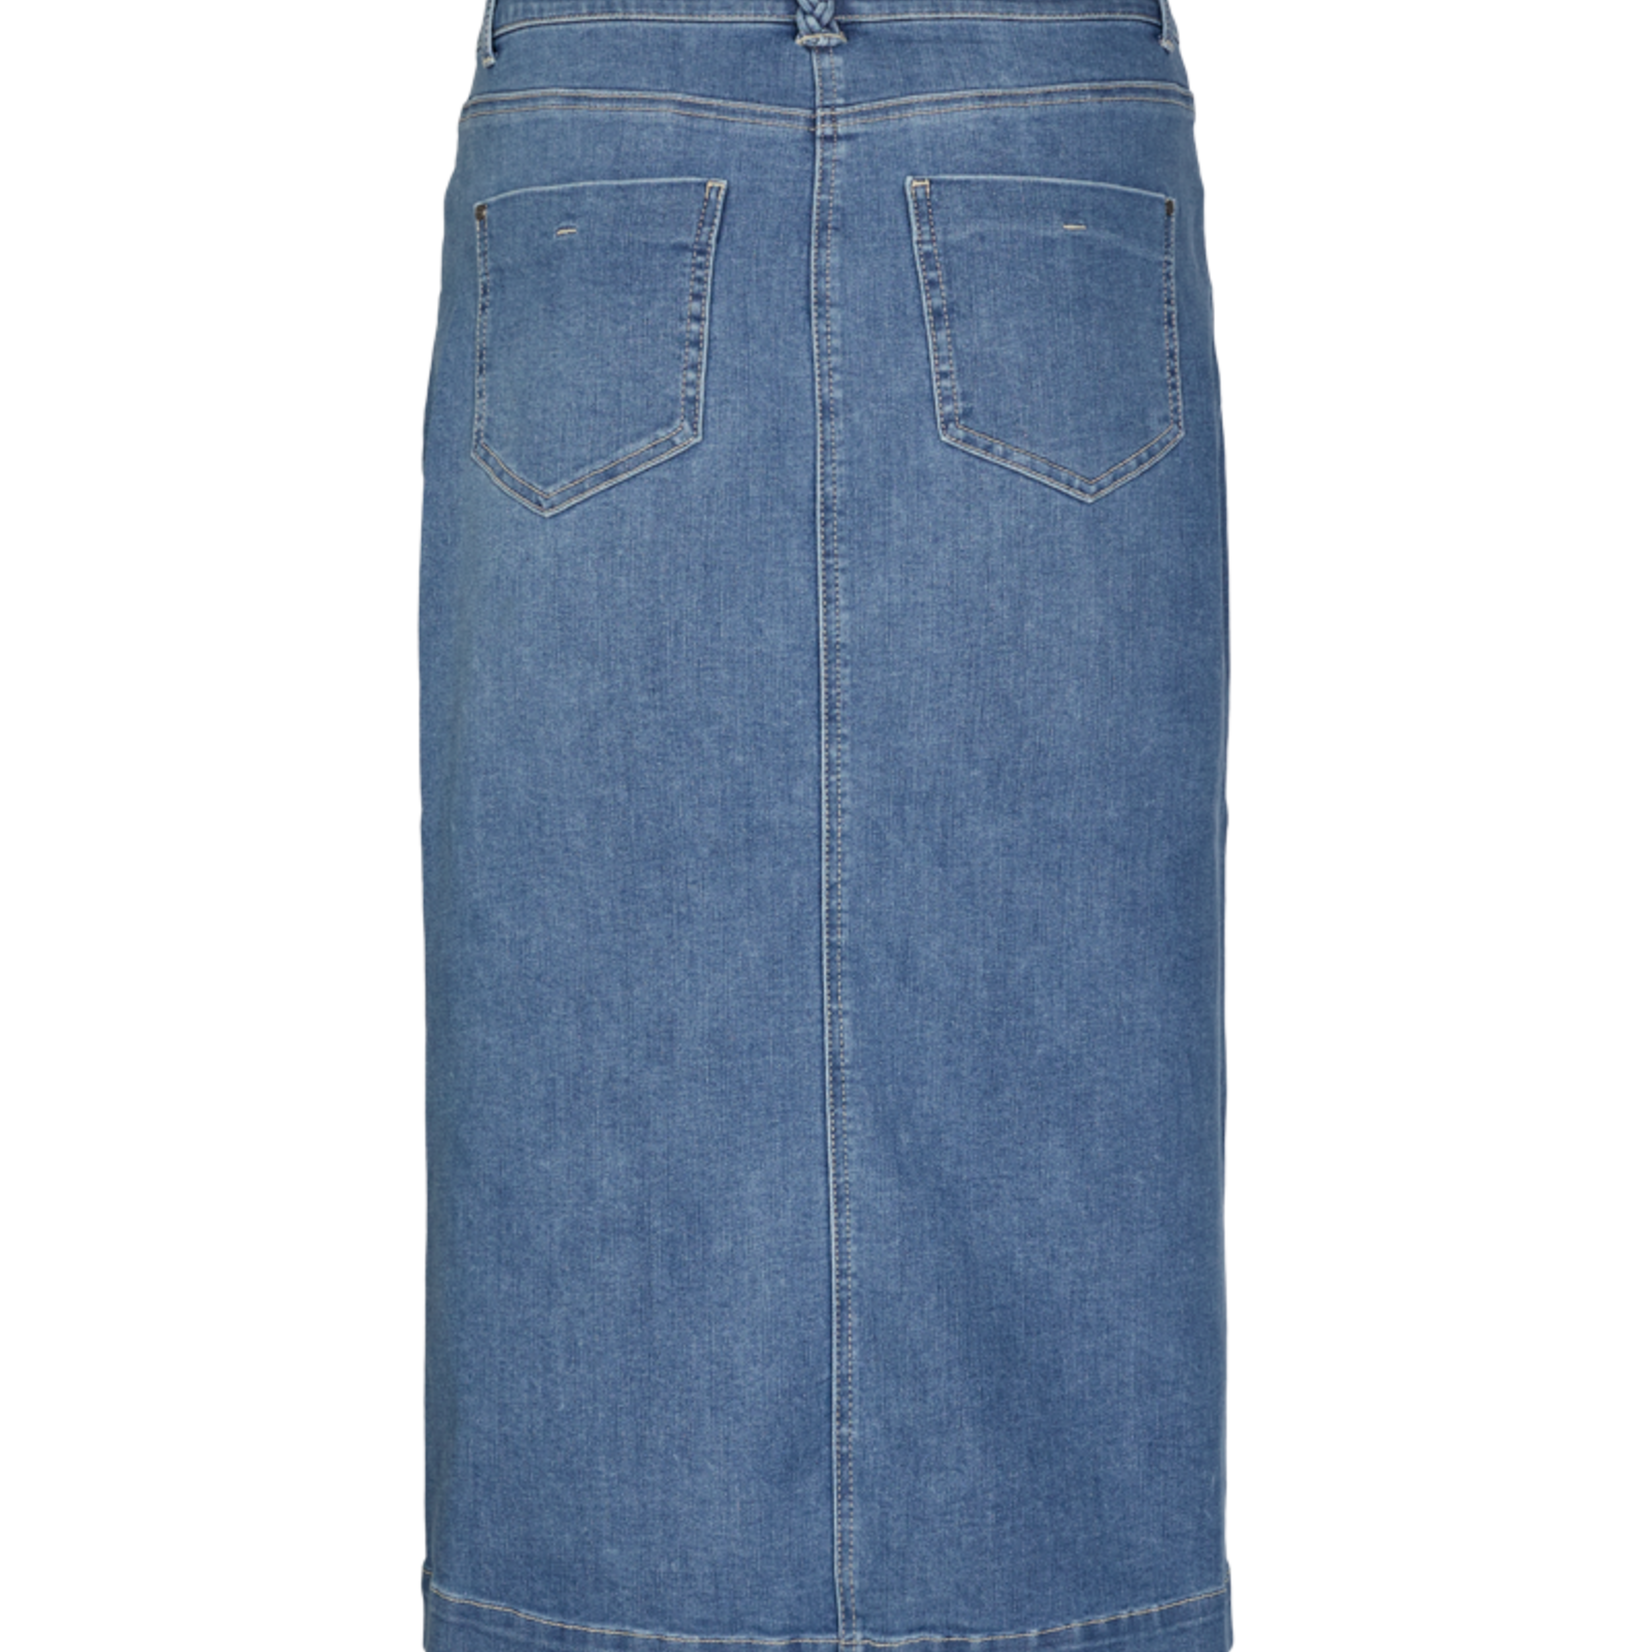 Free/quent Vintage look jeans rok!